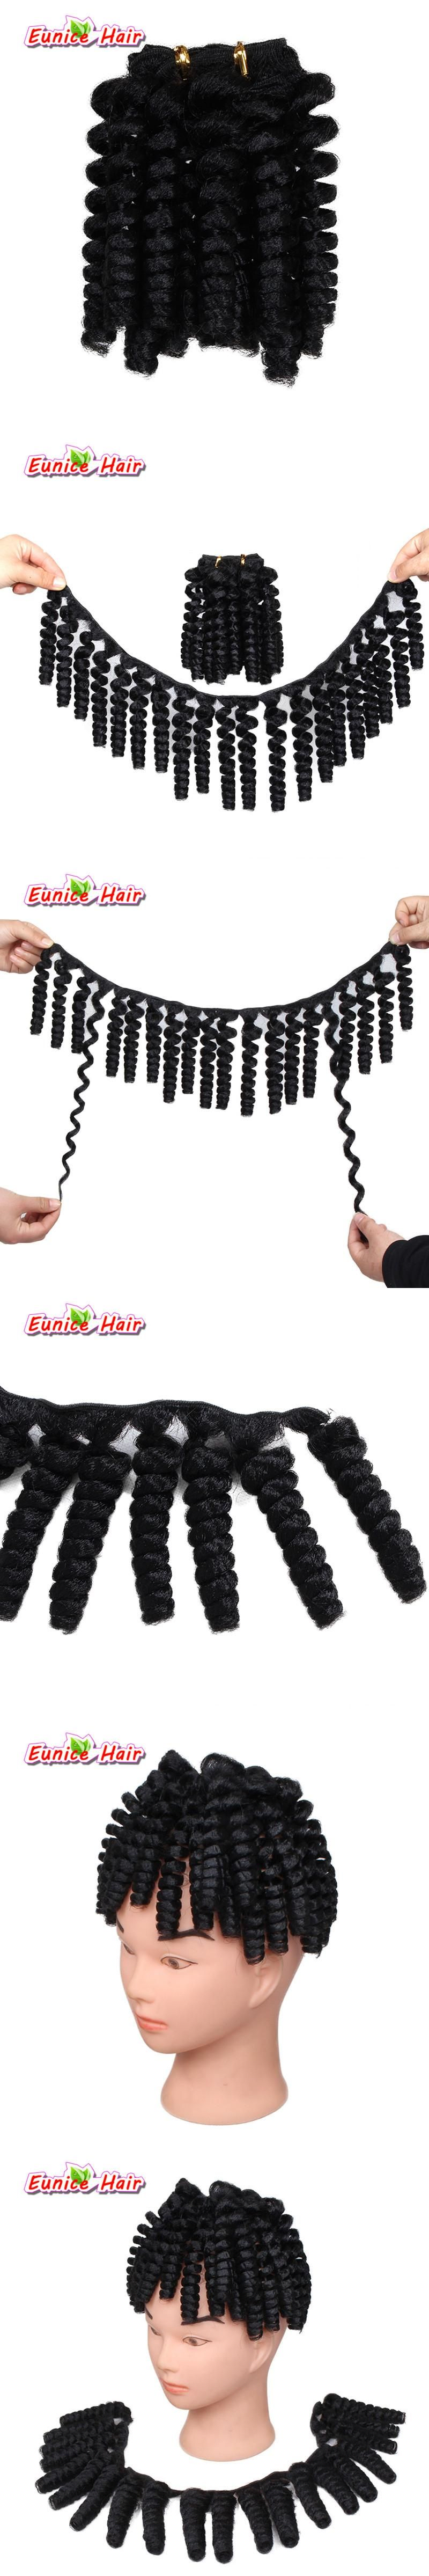 Pre Curled Textured Synthetic Hair Weft 20inch Black Bouncy Curl